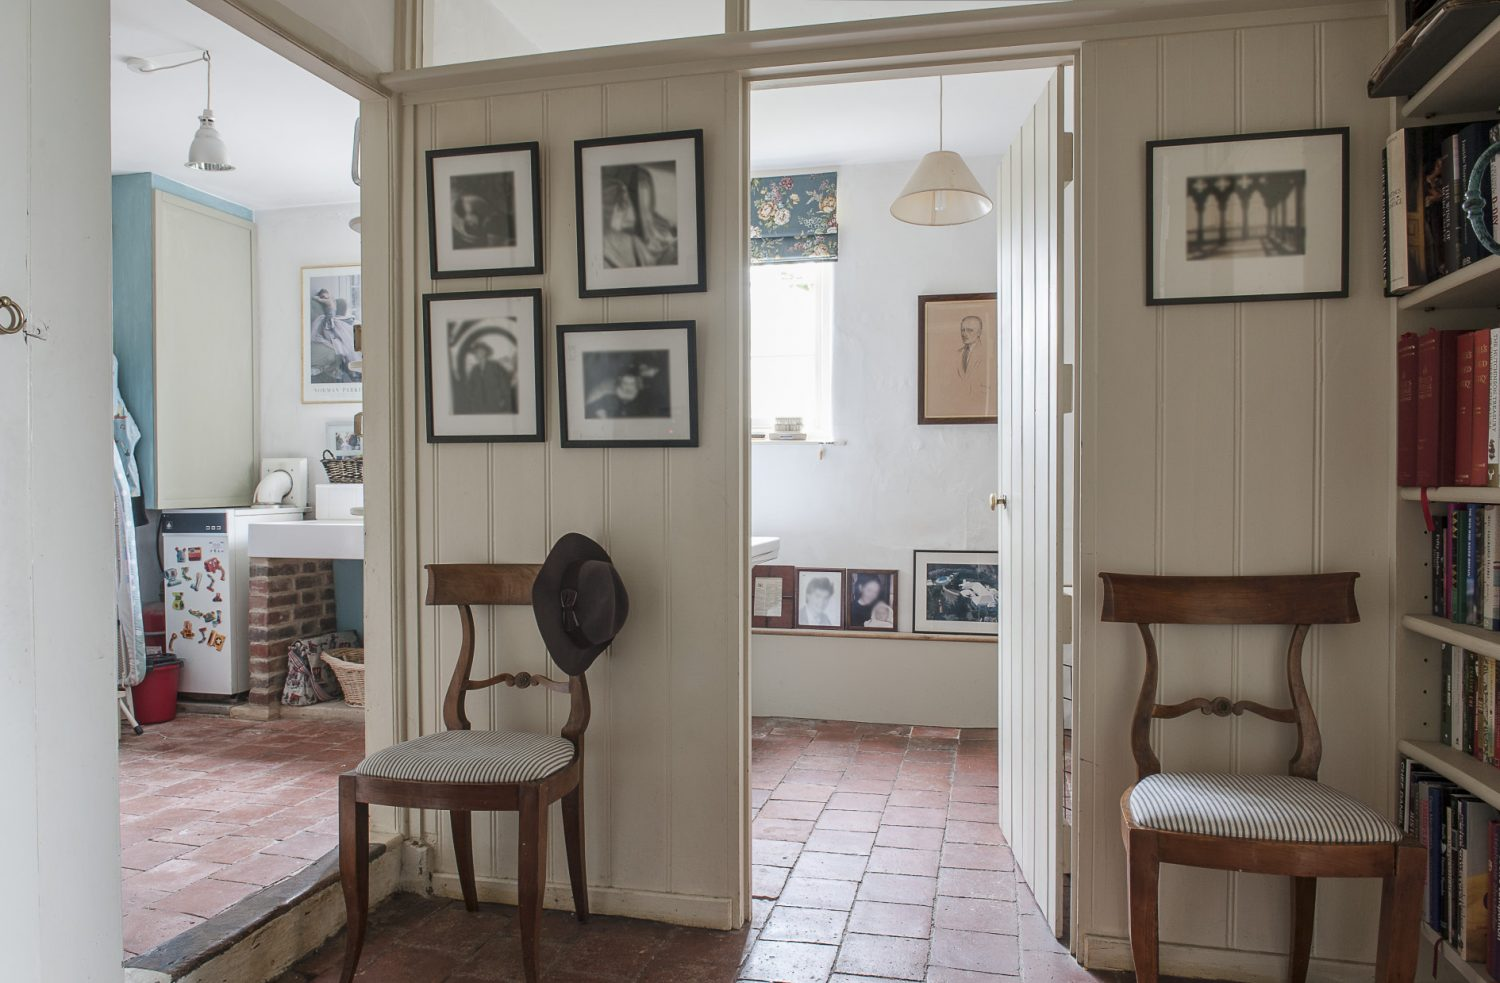 """A door leads off the hallway into the downstairs loo and utility room. In most houses, the utility room is an afterthought, if a thought at all, but Francesca's is a little haven. """"I seem to spend so much time in here, I wanted it to be a pleasant space to work in,"""" she says"""